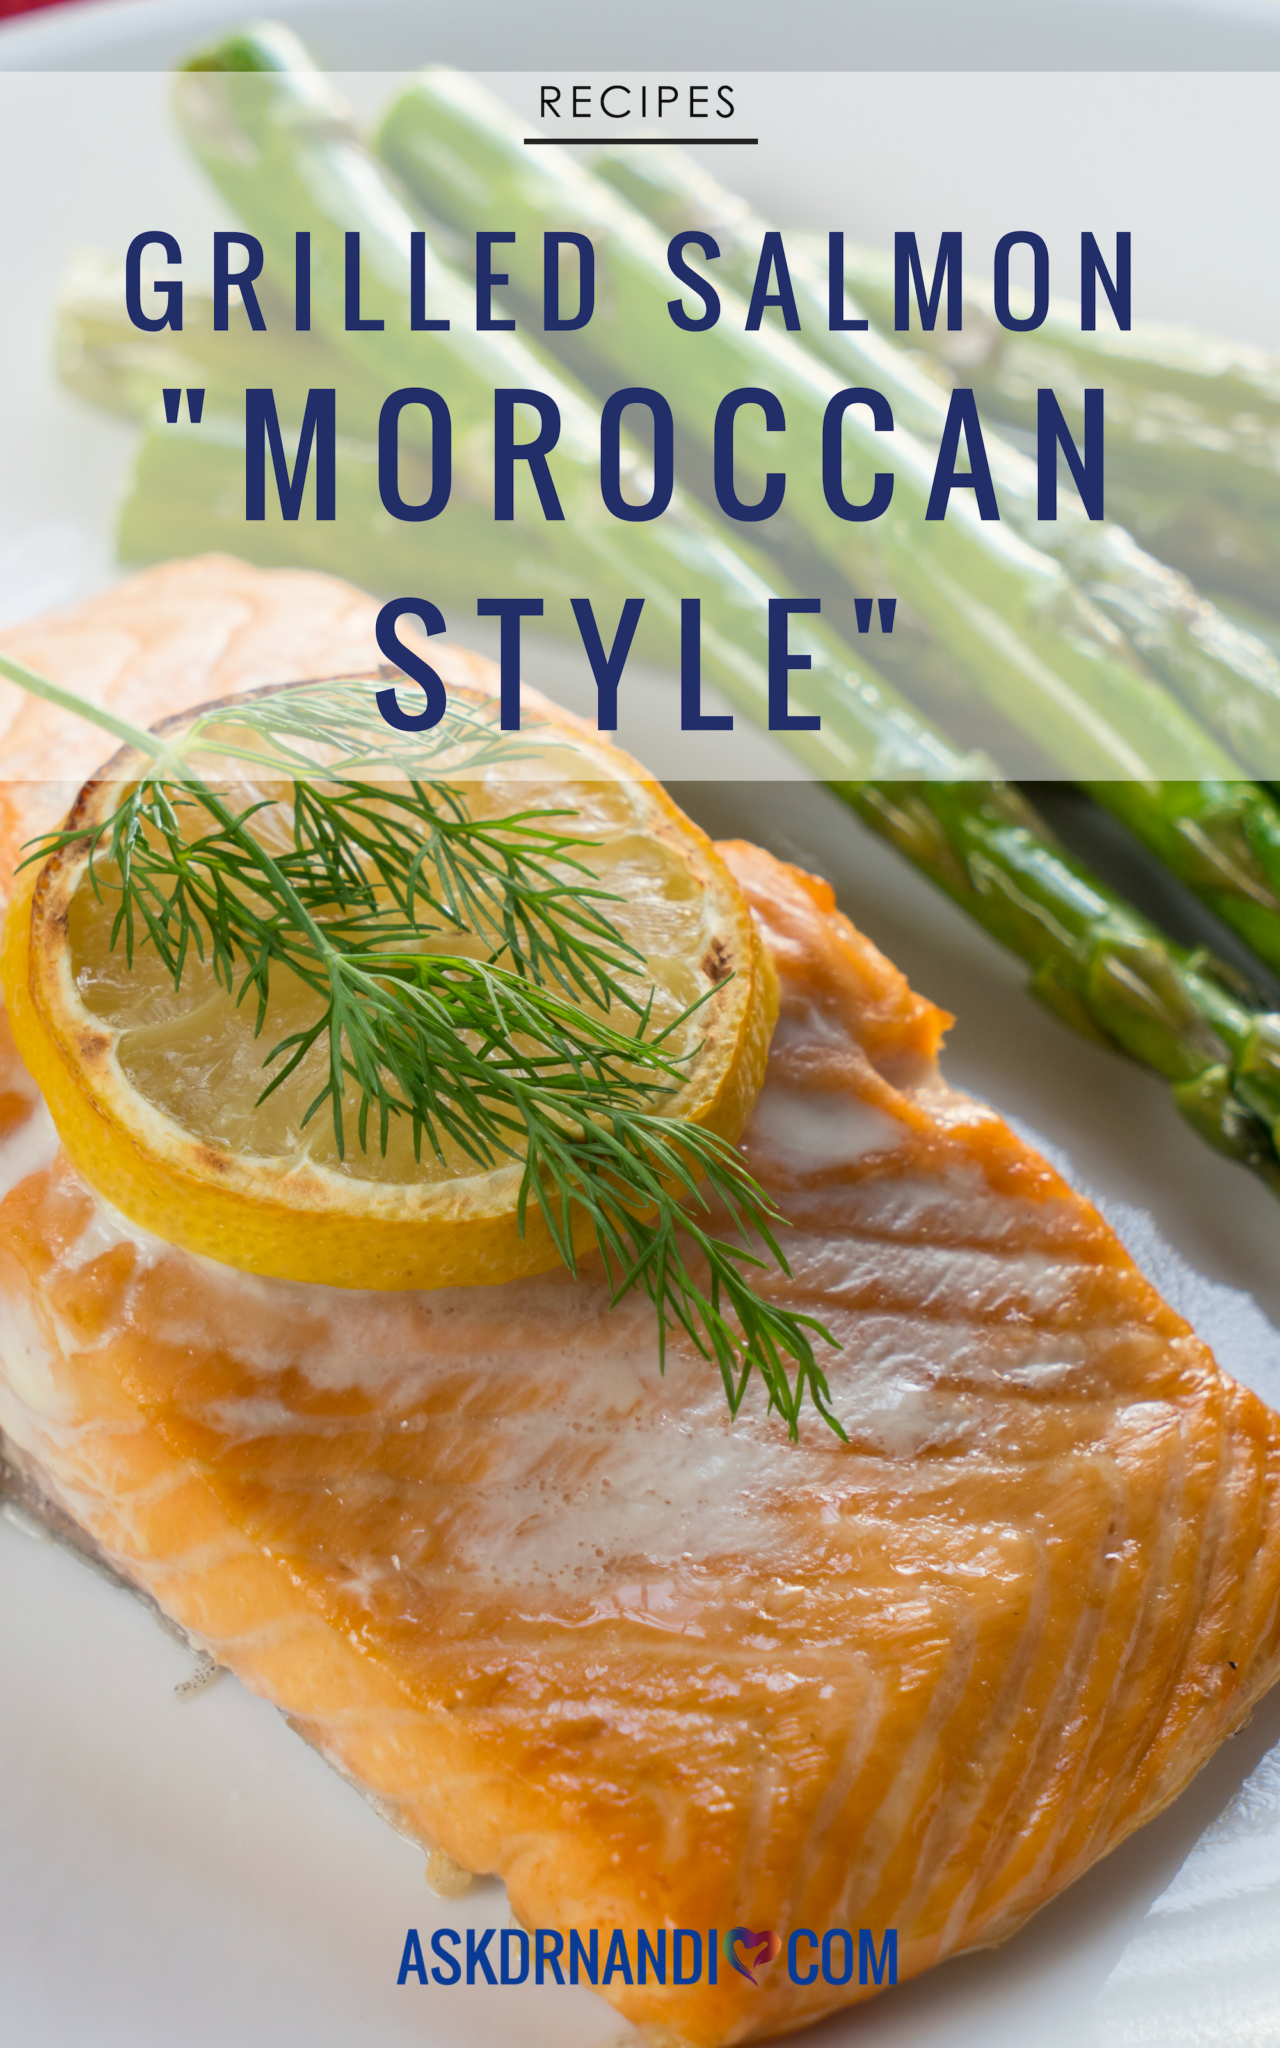 Try This Salmon Recipe by Dr. Nandi! The \